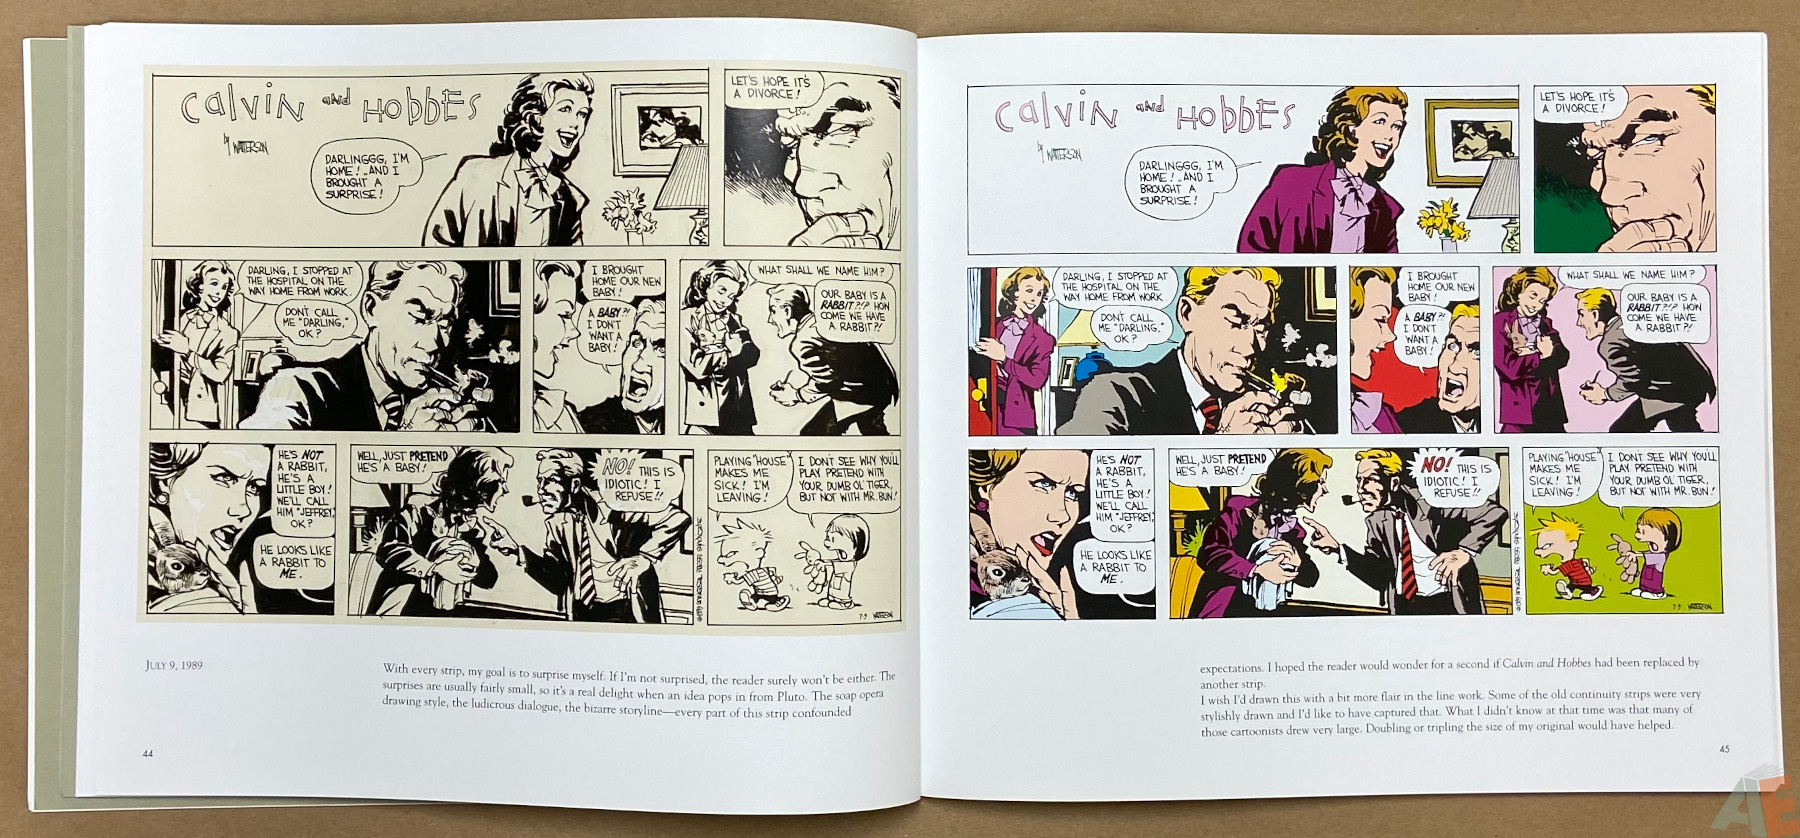 Calvin and Hobbes Sunday Pages 1985 1995 interior 5